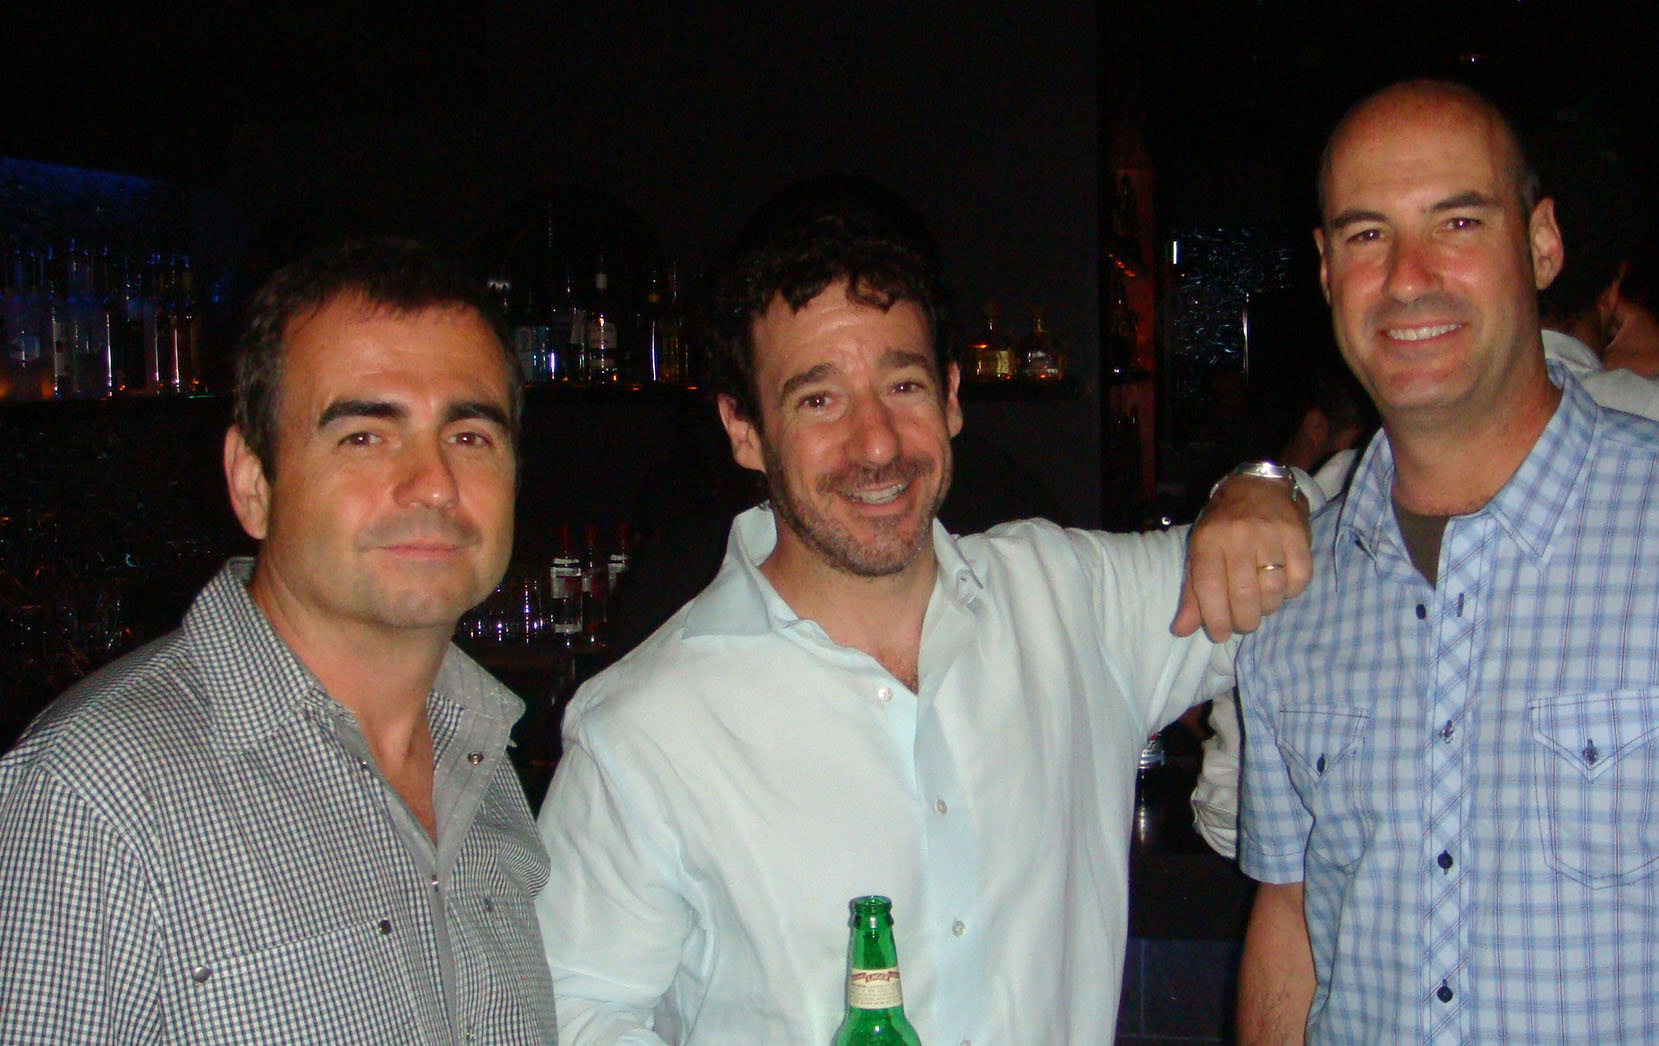 (Three of the four AWN Executive Committee Members pictured at the PEARL: Brian Hieggelke, Everett Finkelstein, Paul Curci)